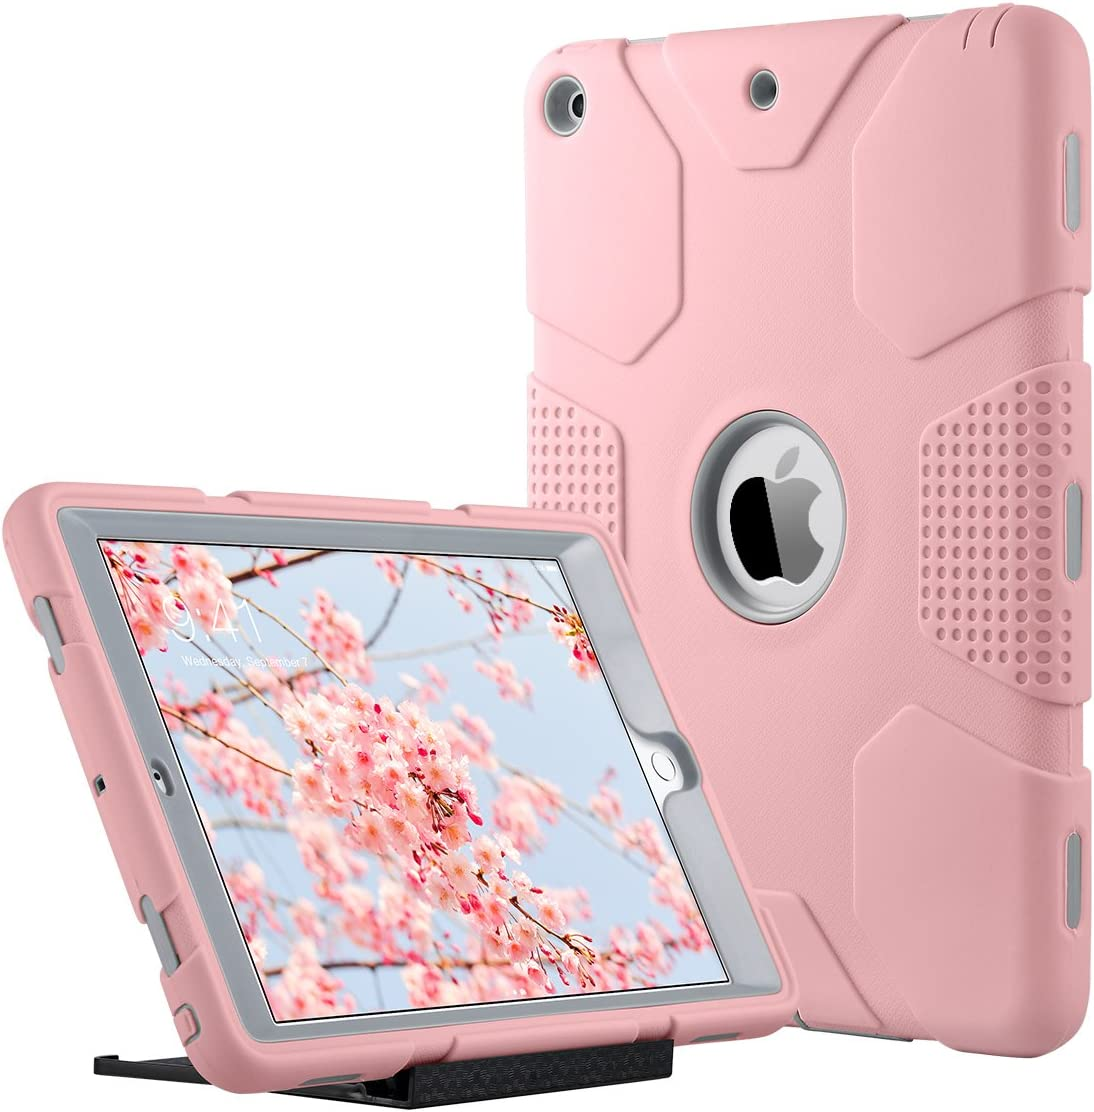 iPad 2017 9.7 inch Case, iPad Case 9 7 inches for Kids, ULAK Heavy Duty Shockproof Kidproof Protective Case Silicone PC Dual Layer Hybrid Cover, with Universal Kickstand-Rose Gold/Grey